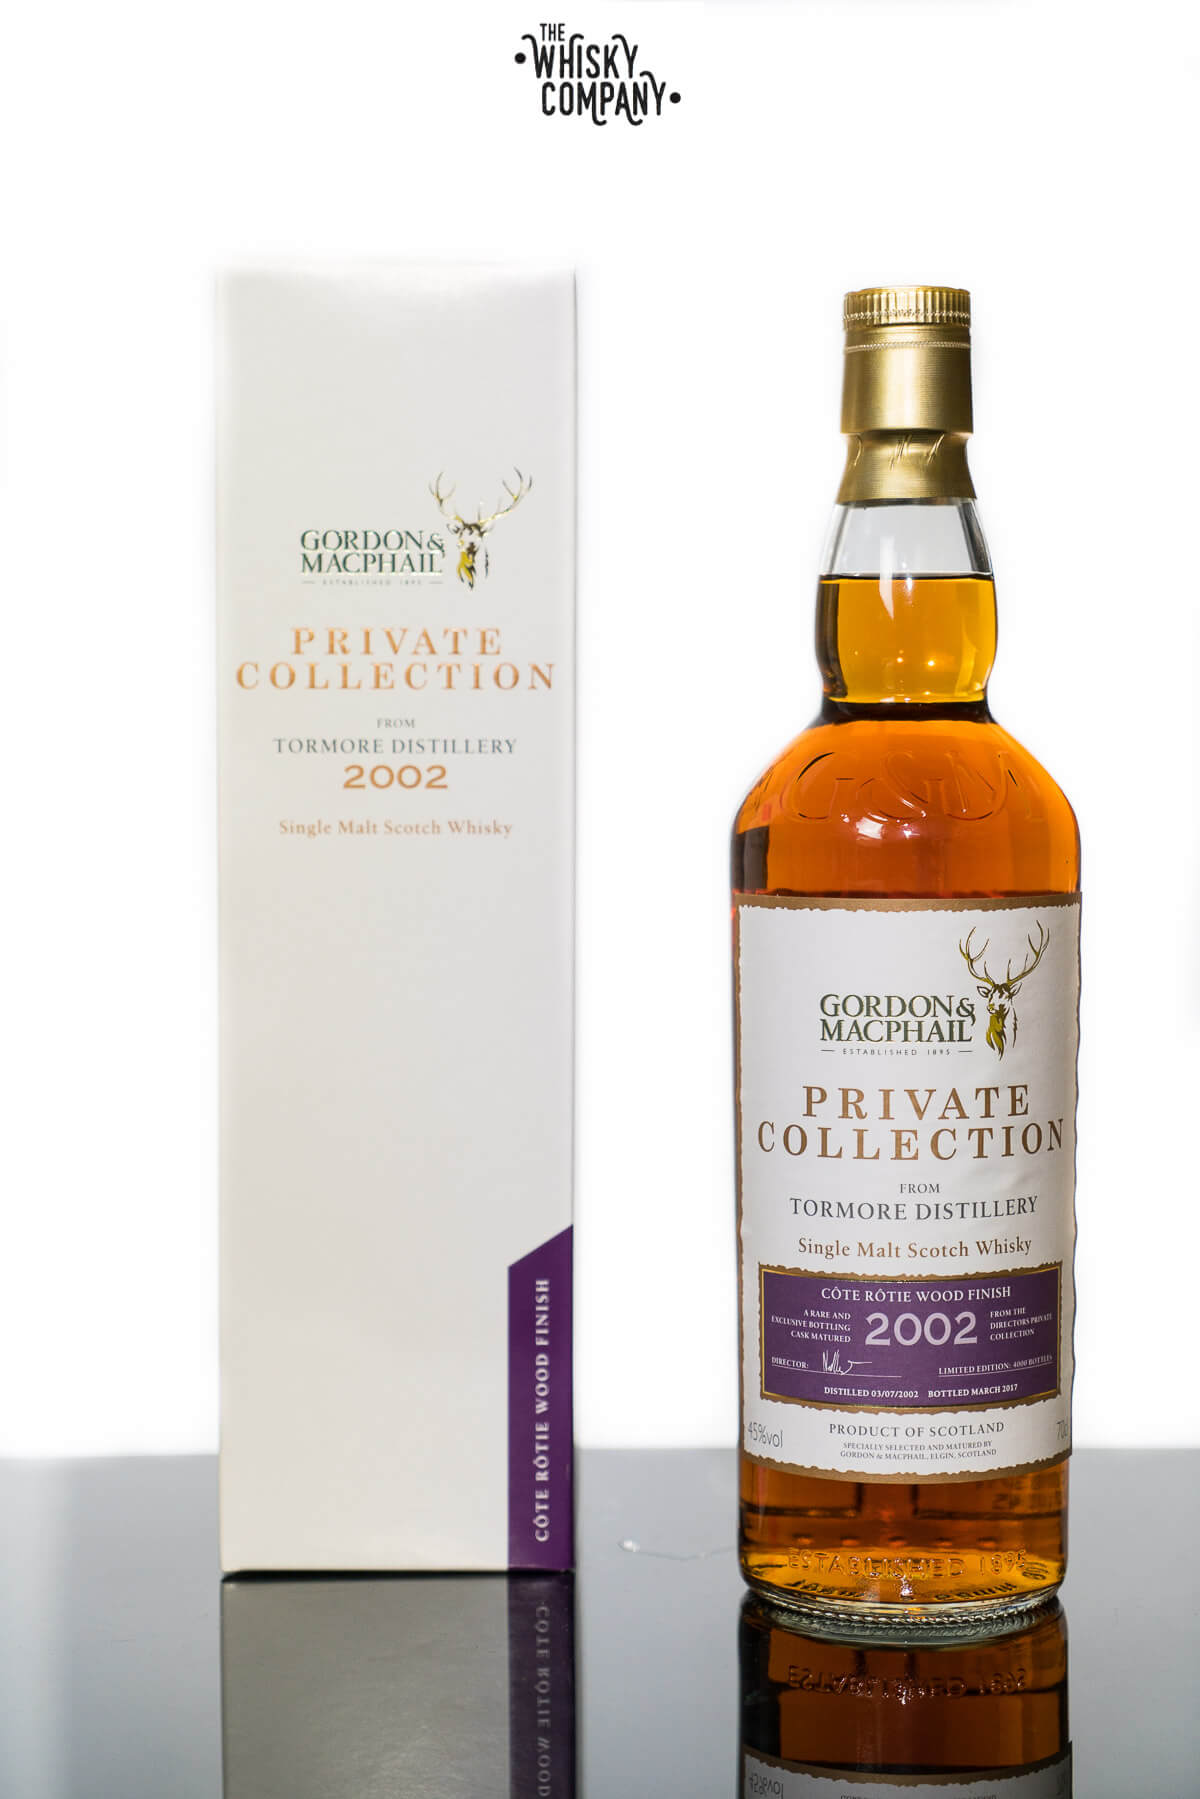 Tormore 14 Years Old 2002 Côte-Rôtie Wood Finish Single Malt Scotch Whisky Gordon & MacPhail (700ml)